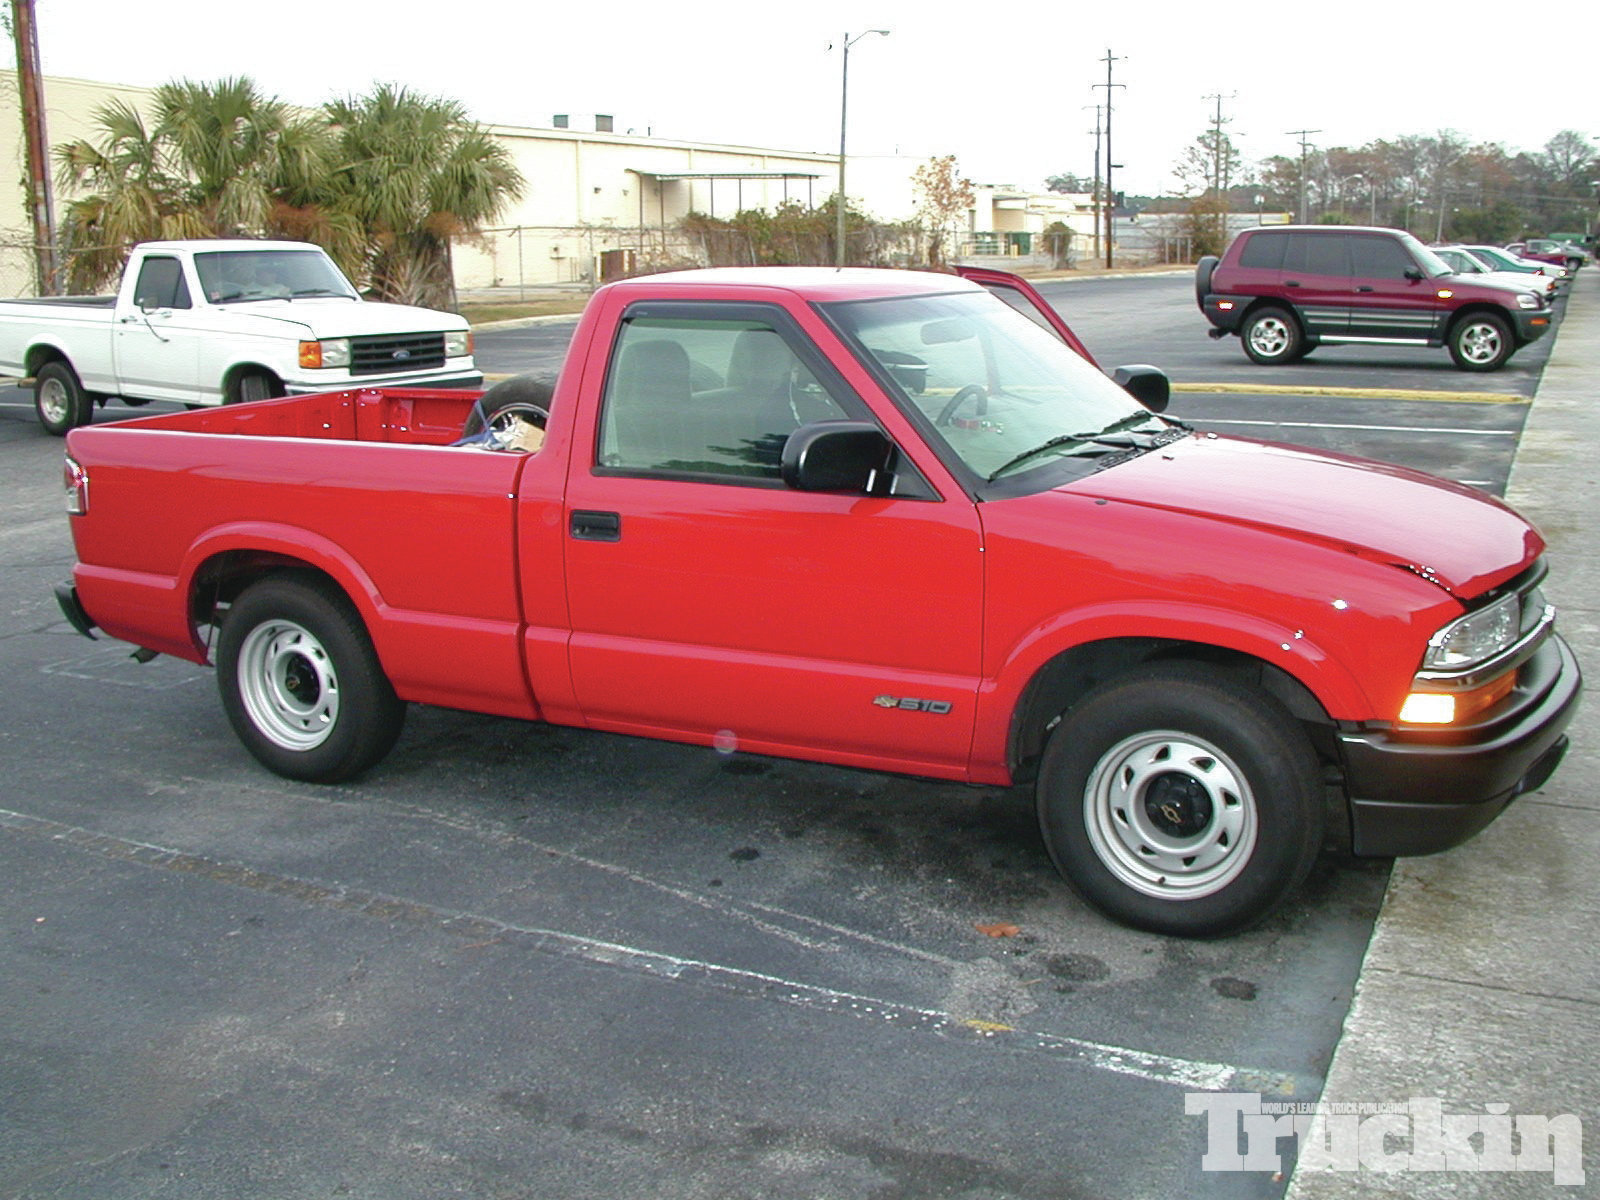 R18917P1998Y852MA moreover 1993 Chevrolet S10 Turned Buick Powered Hot Rod furthermore 2856 Chevy S107 together with Generac Automatic Transfer Switch Wiring Diagram furthermore Trade Chevy S10 1998 A 2879942. on 2000 chevy s10